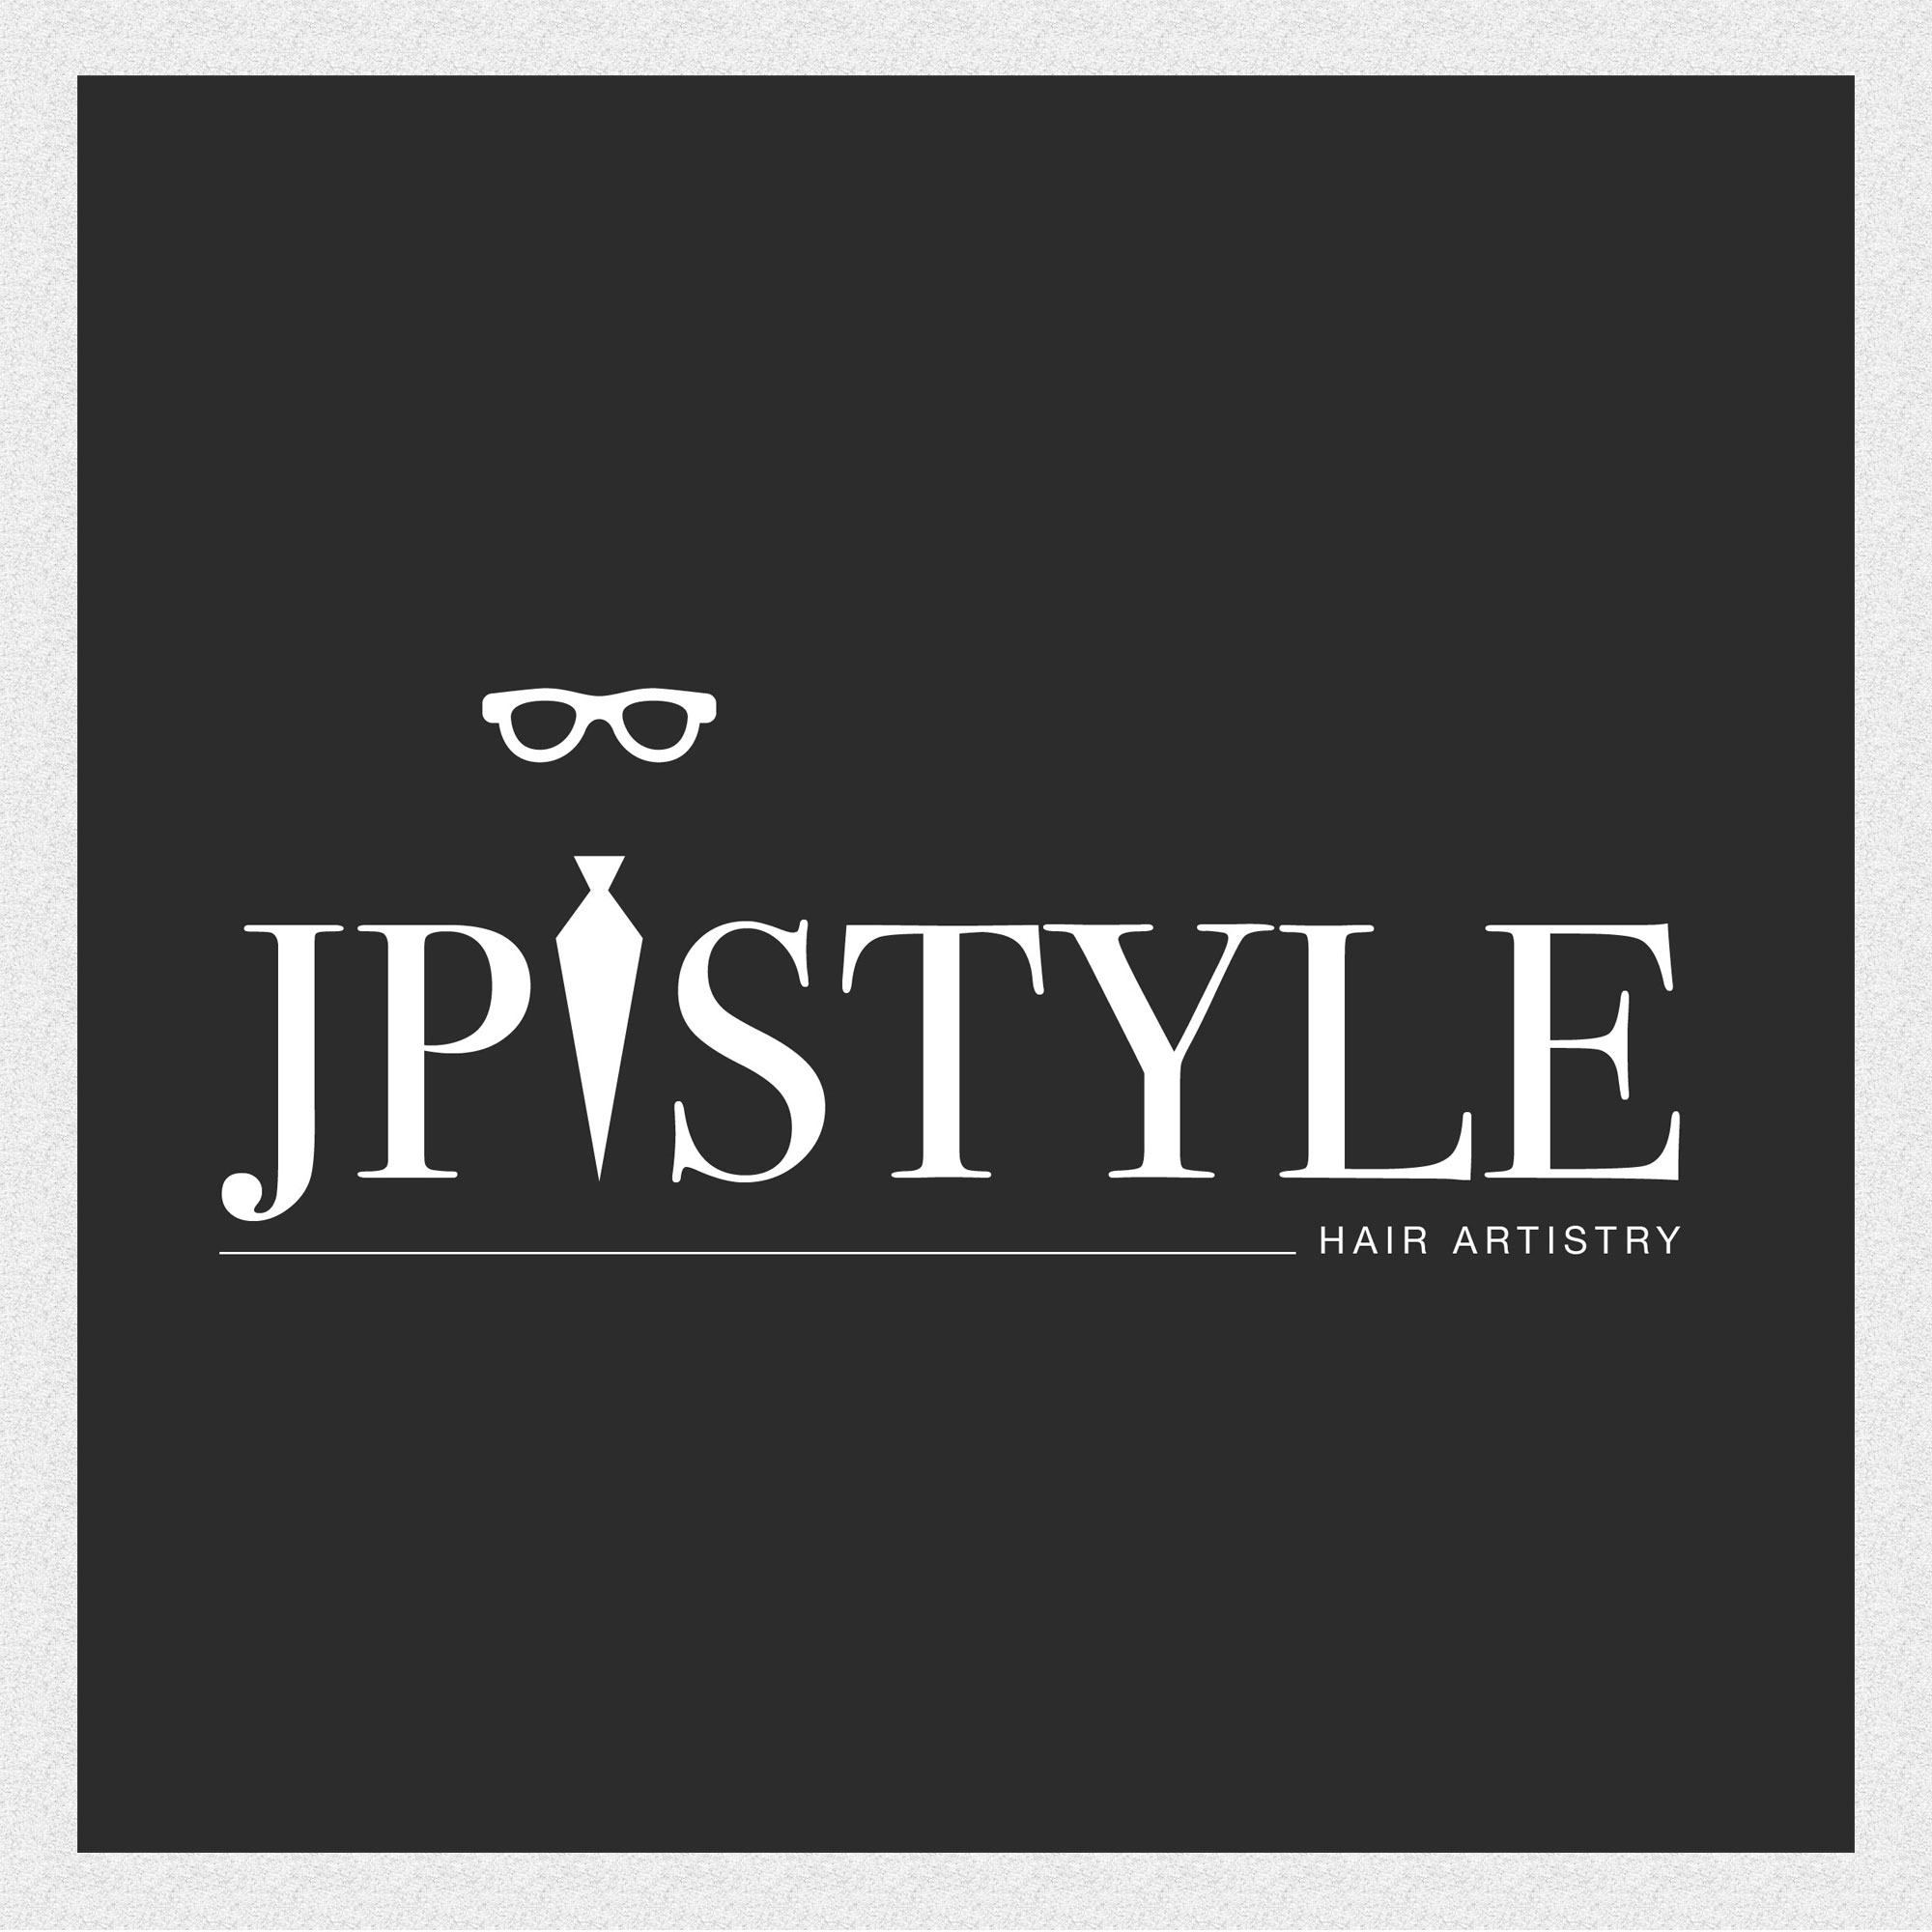 jpstyle02